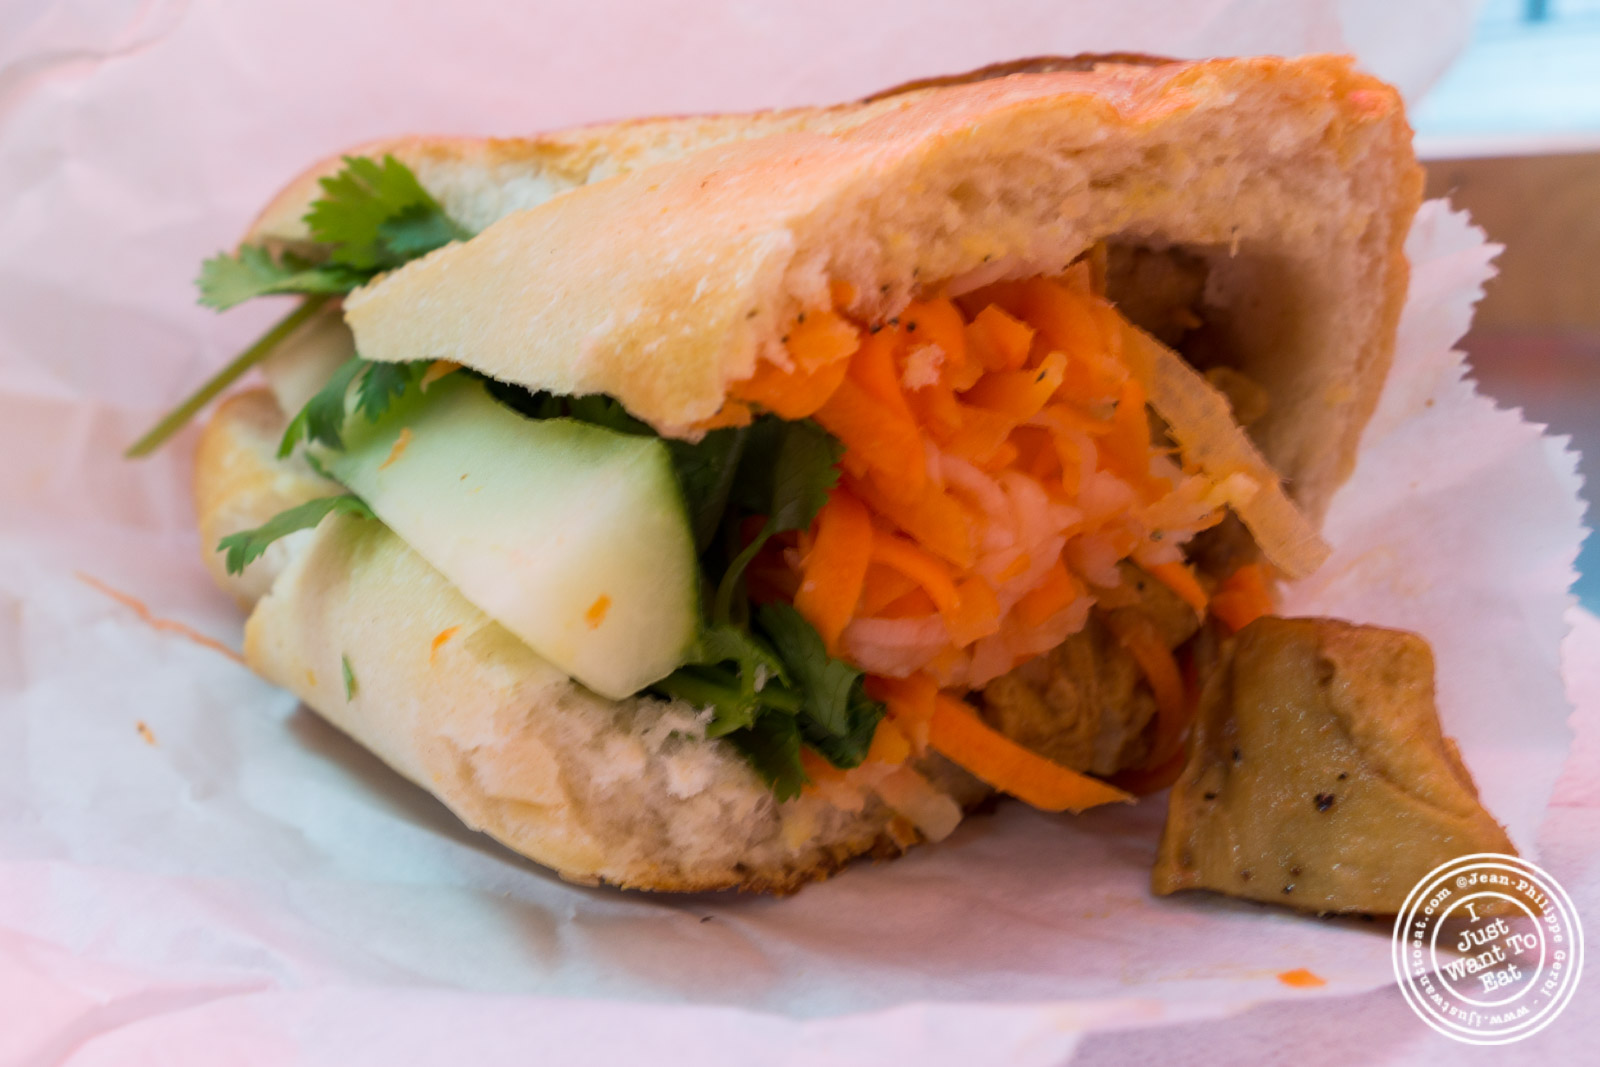 Vegan chicken sandwich at Saigon Vietnamese Sandwich Deli in New York, NY